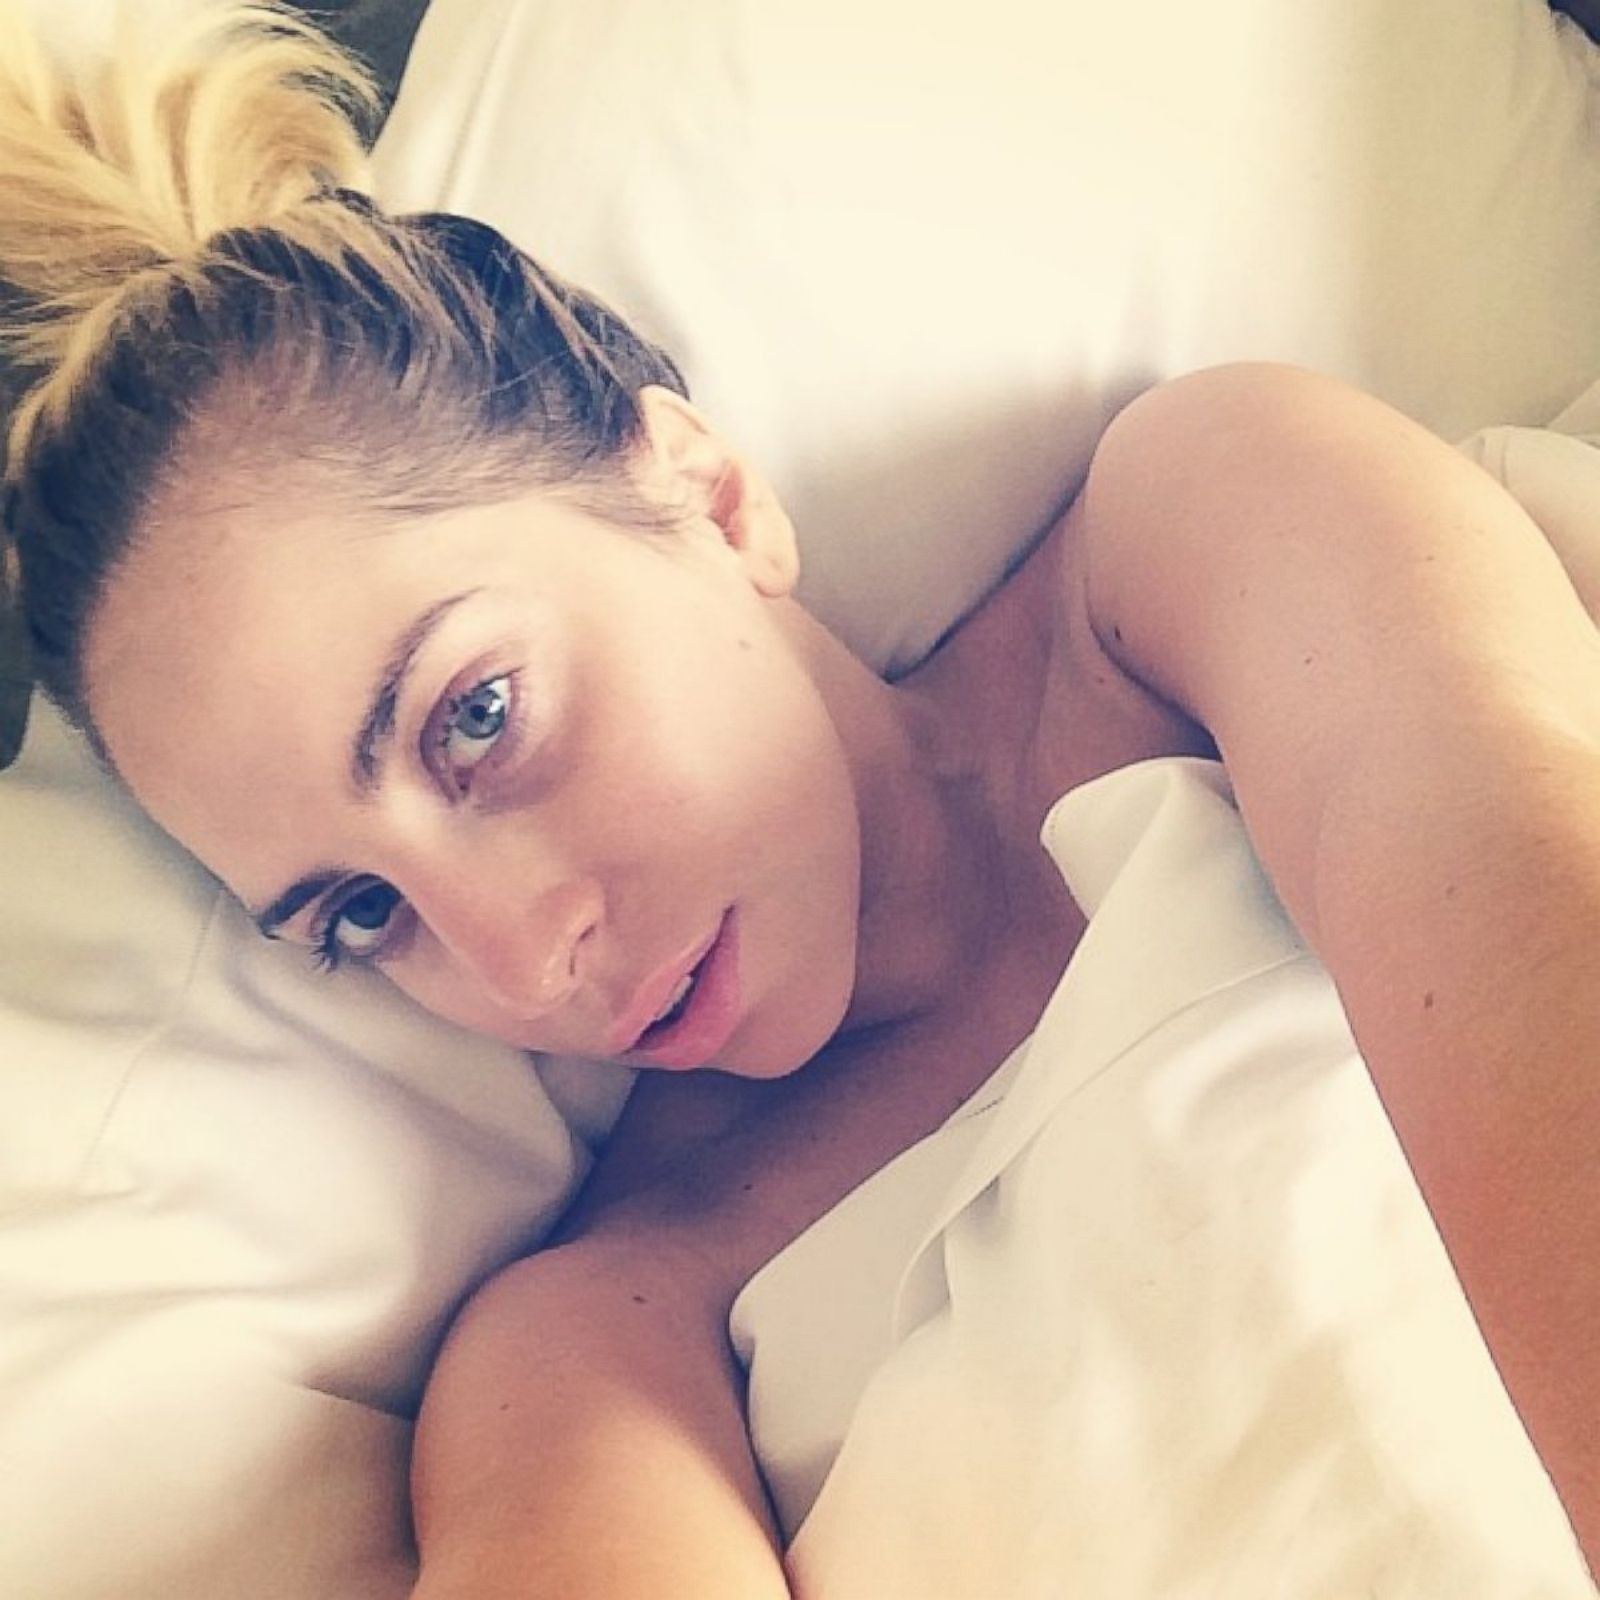 Lady Gaga Enjoys a Day Off Picture | Celebrities Without ... Lady Gaga Instagram